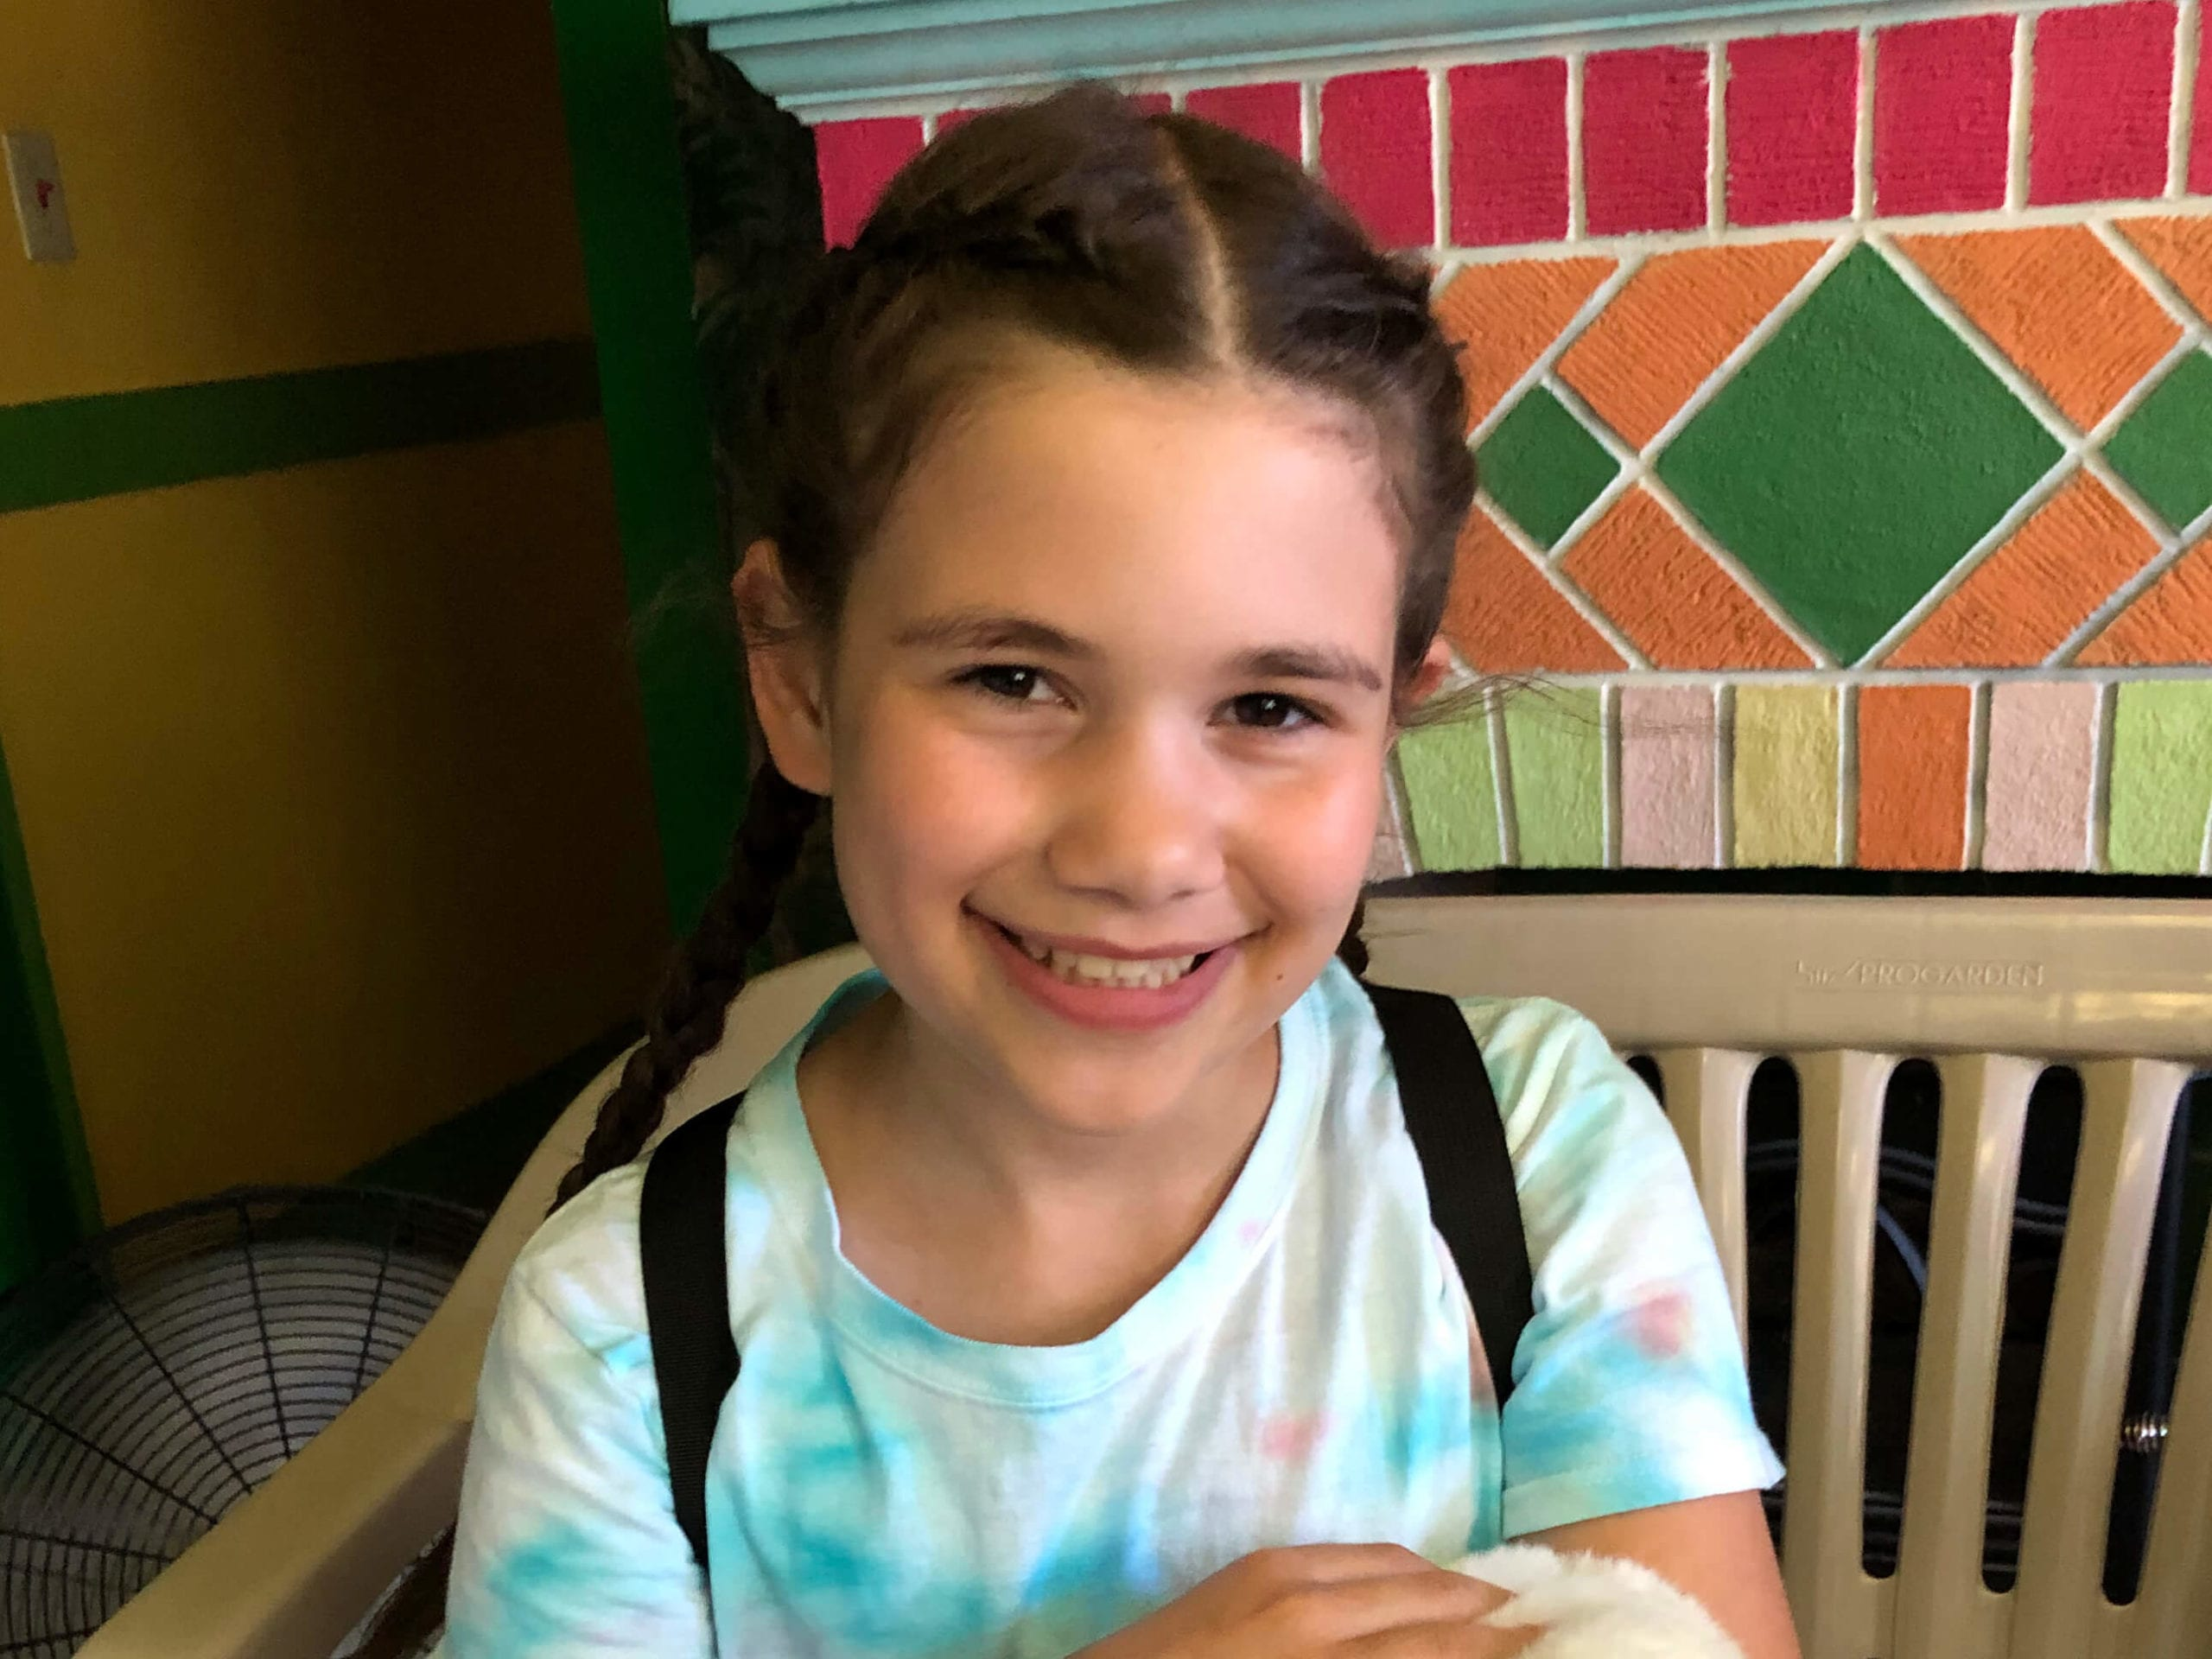 Mia had selective mutism until she was treated at the Child mind Institute